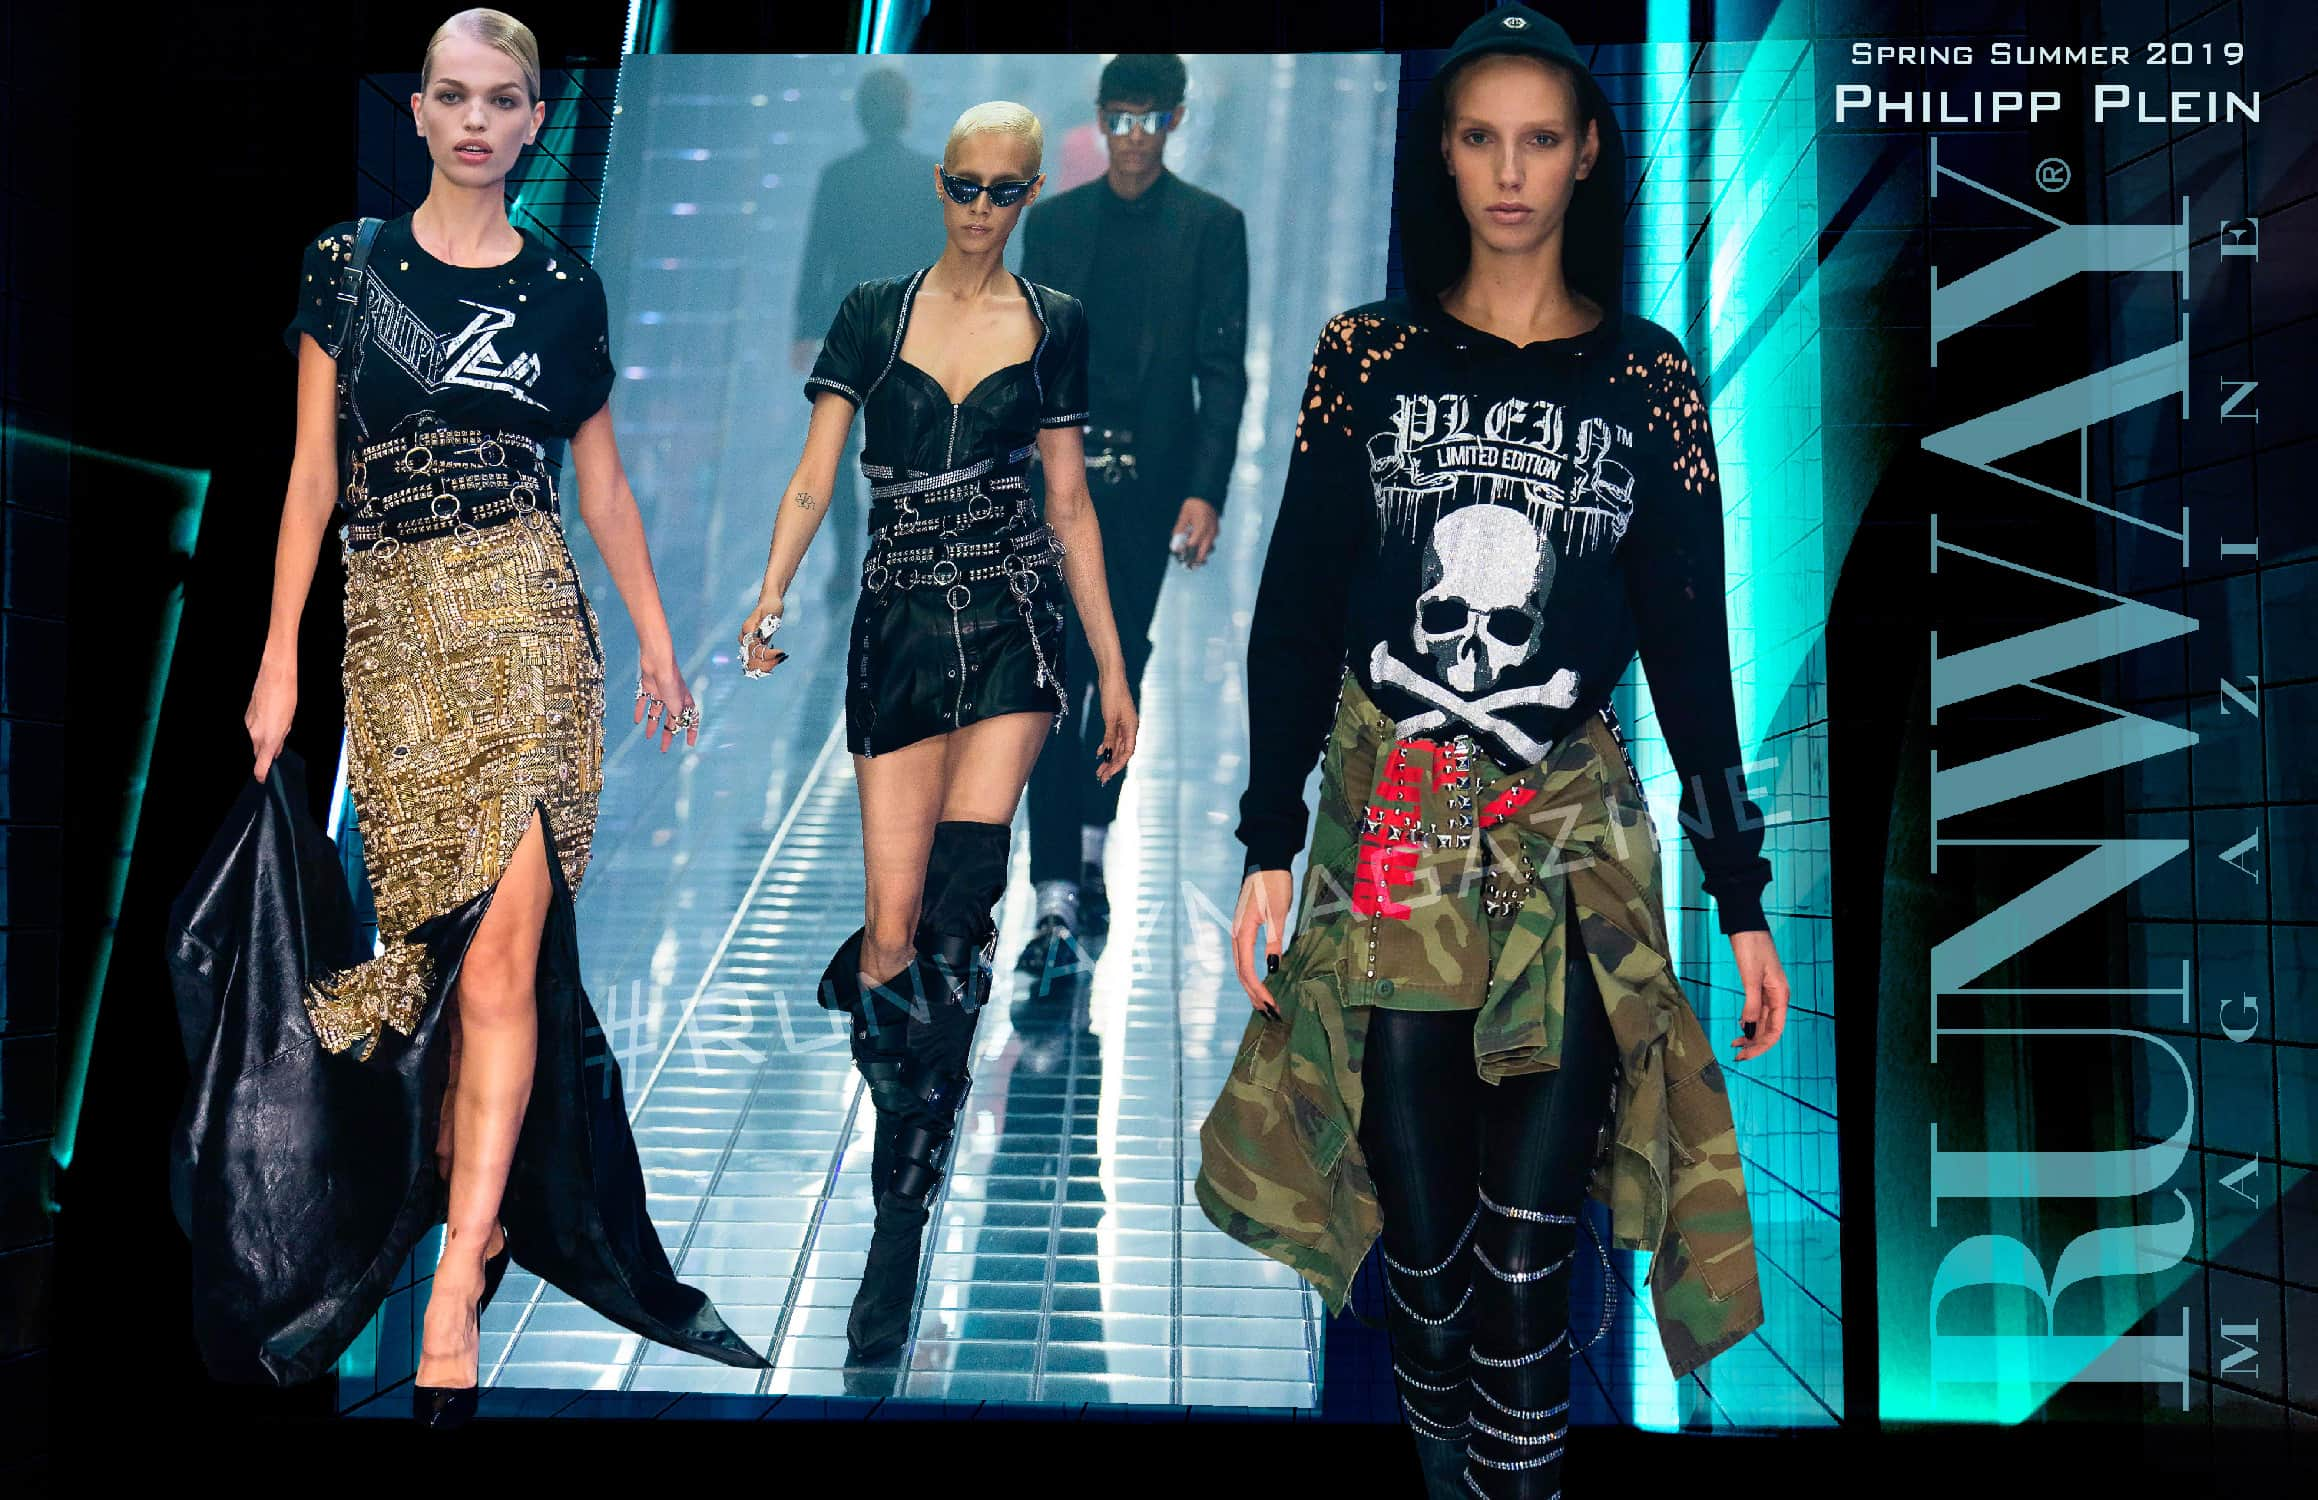 Philipp Plein Spring Summer 2019 Milan Fashion Week by RUNWAY MAGAZINE